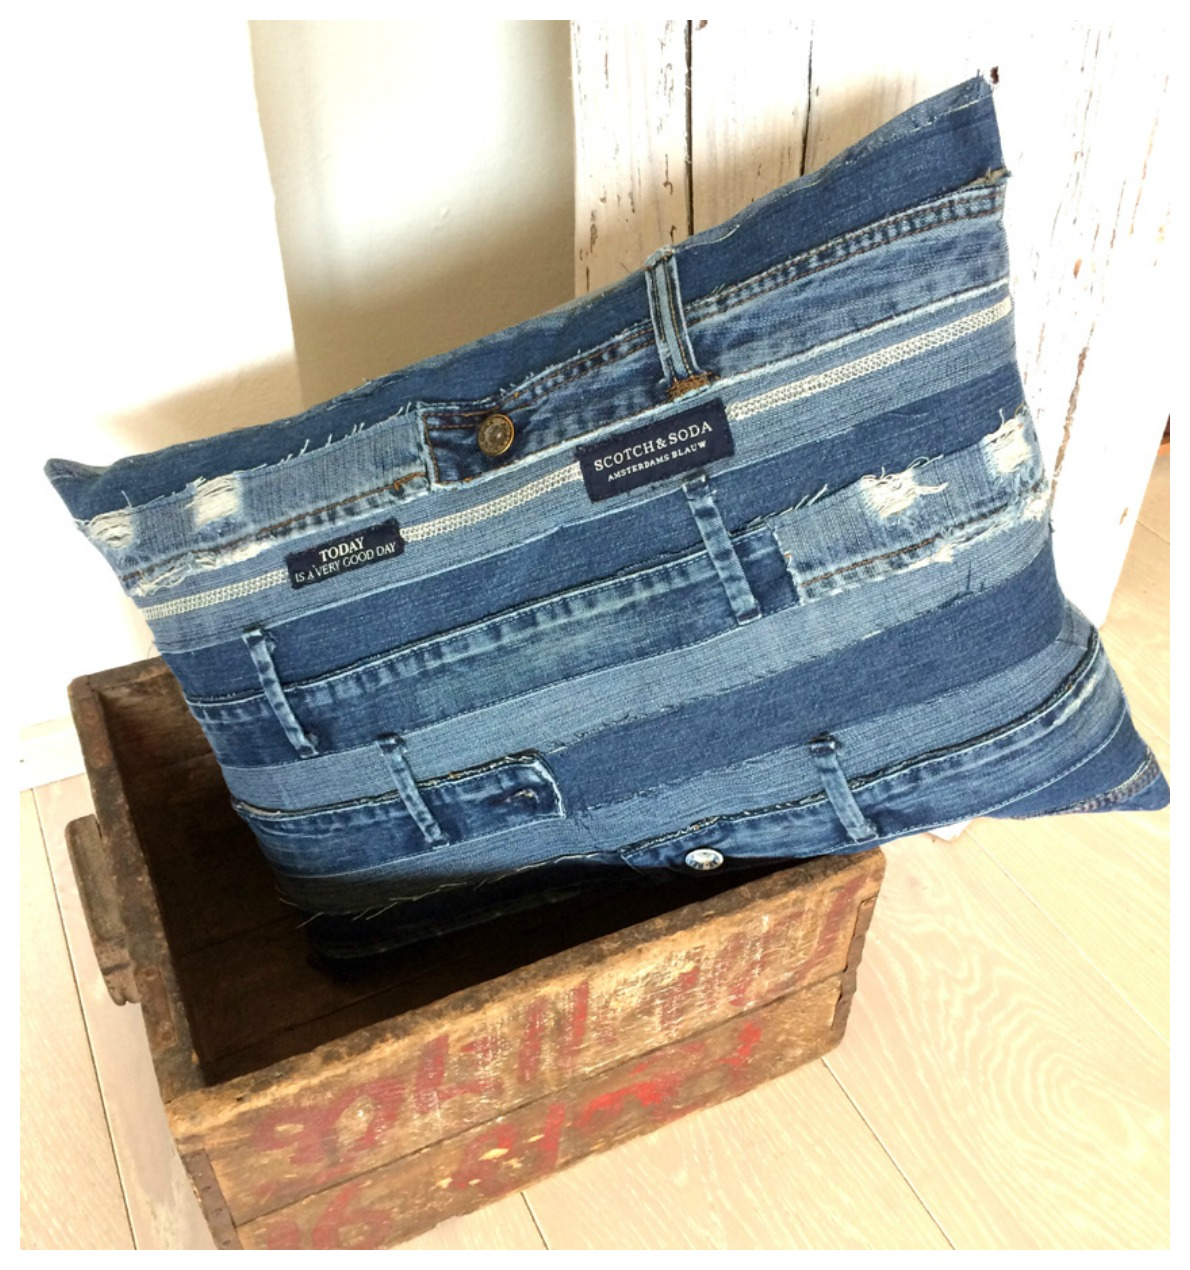 anlukaa glas faden schon wieder upcycling blue jeans love. Black Bedroom Furniture Sets. Home Design Ideas